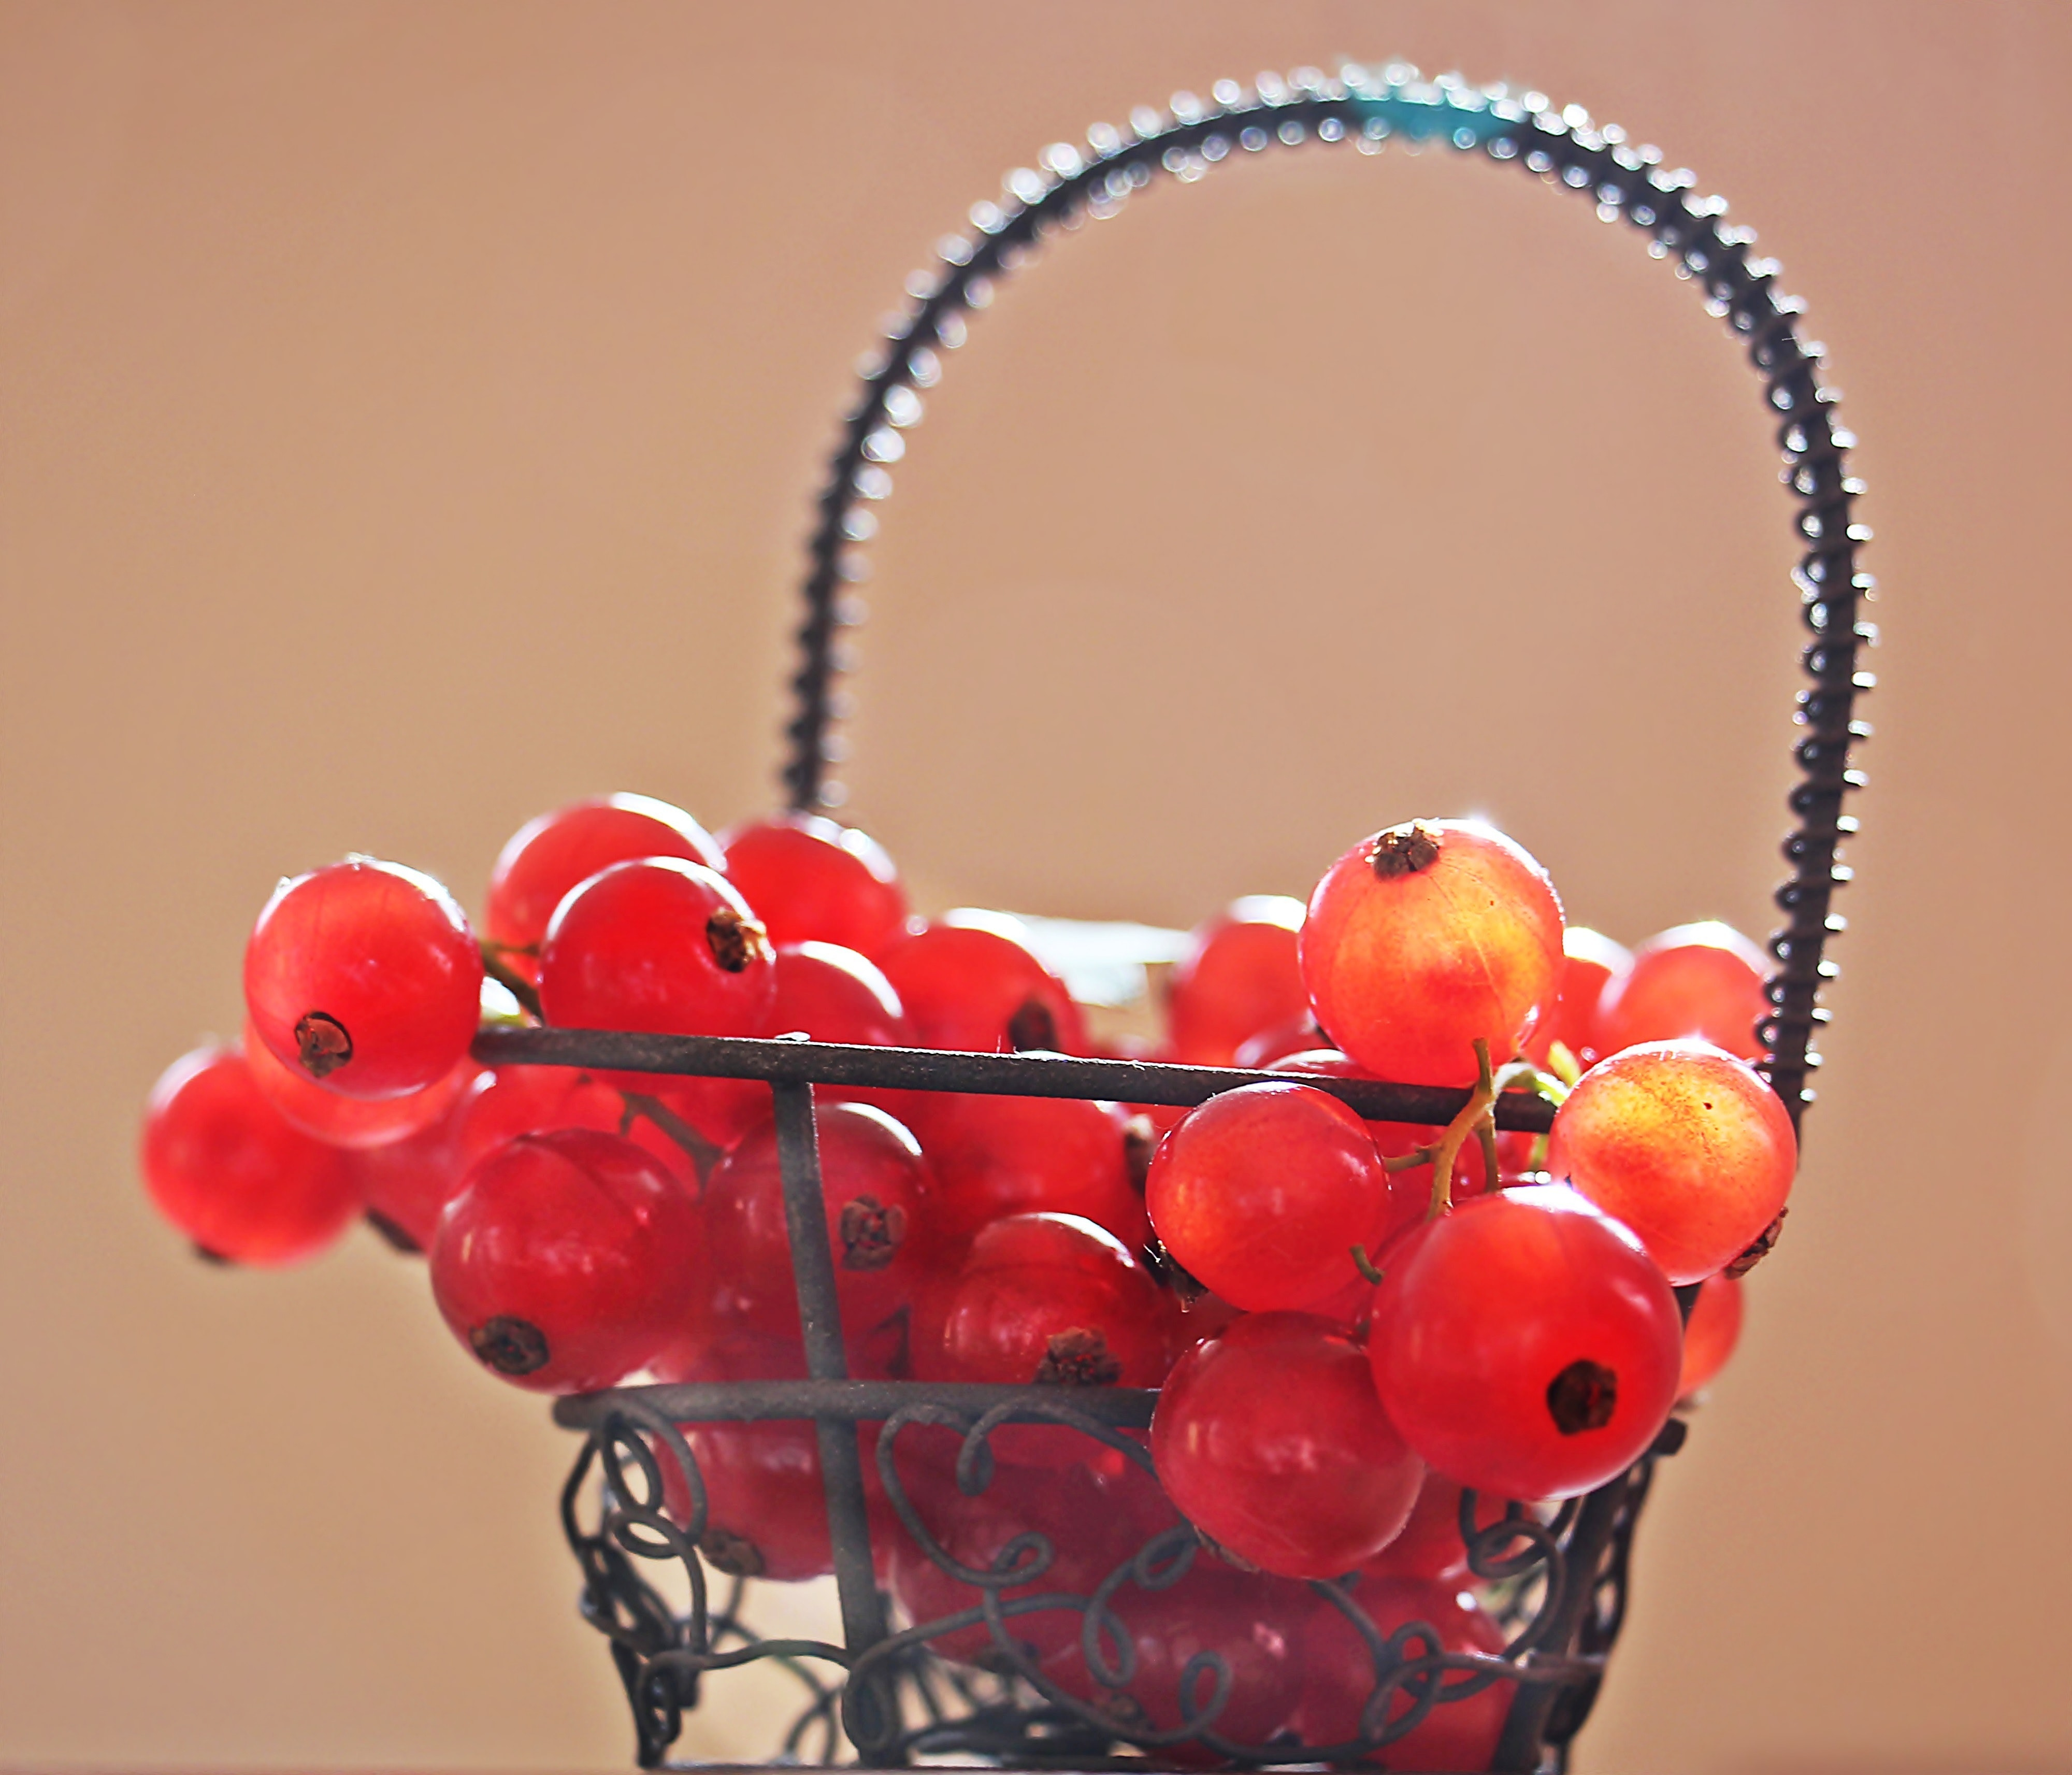 Red Cherries on Silver Metal Basket Photo, Basket, Fresh, Tasty, Still life, HQ Photo